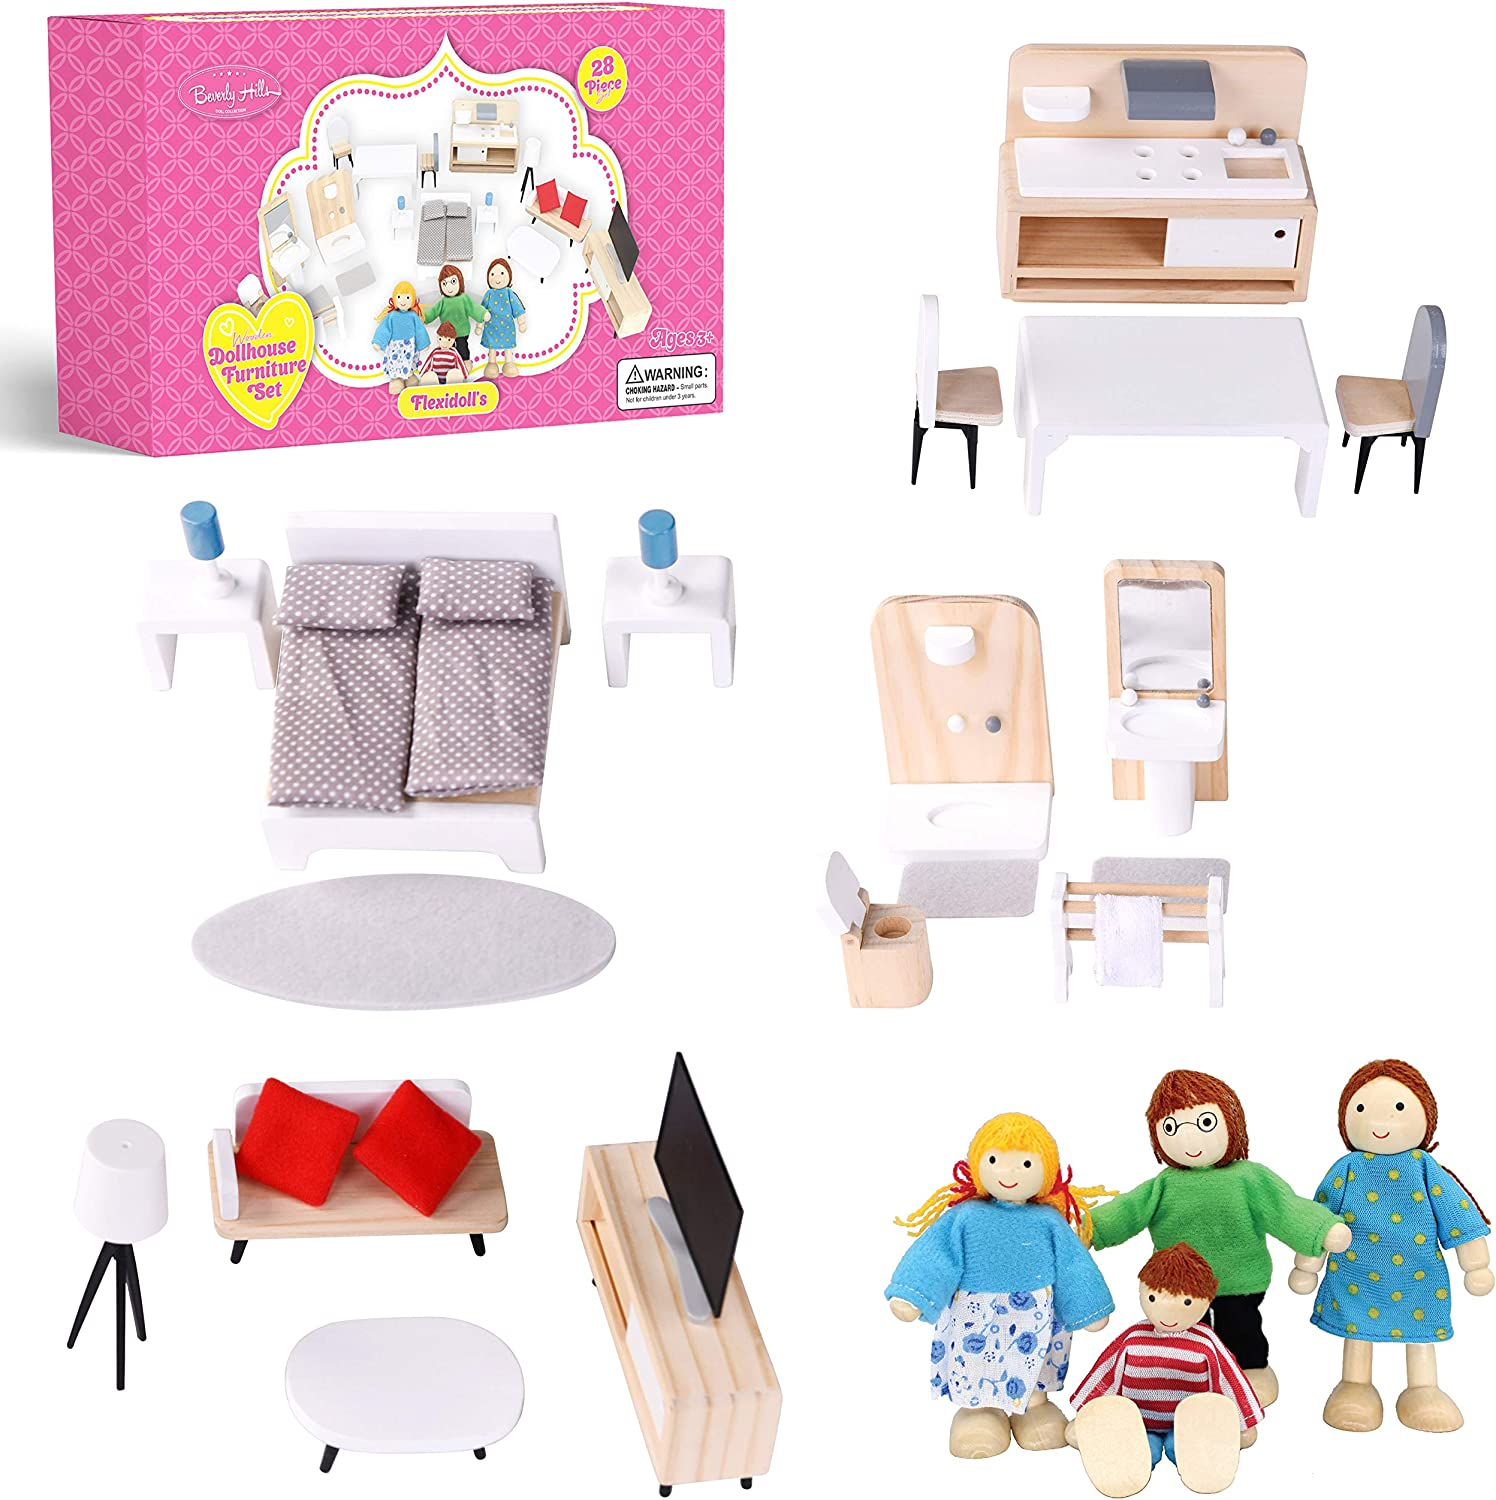 Beverly Hills Wooden Dollhouse Furniture Set with 4 Dollhouse Family Figures - 28 Piece Set Fully Furnished Kitchen, Living Room, Bedroom, Bathroom